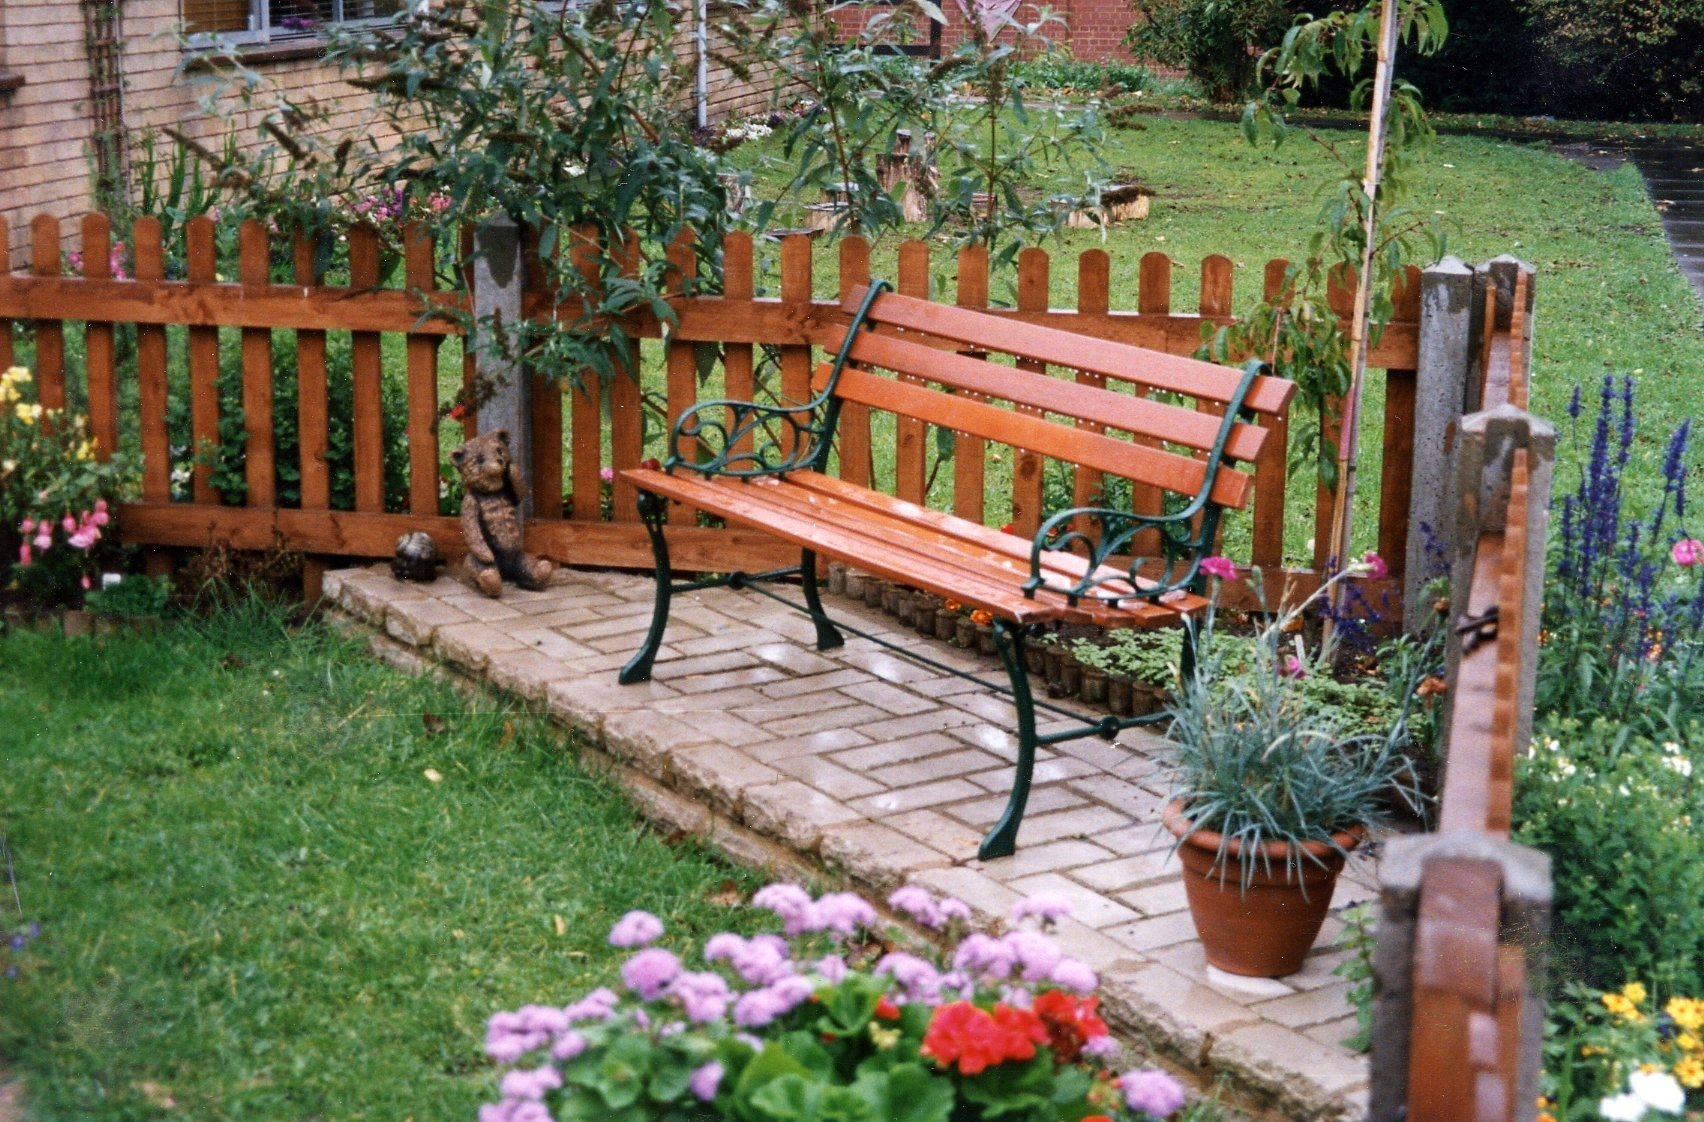 10 Pretty Home And Garden Decorating Ideas tips for decorating garden decoration ideas 2021